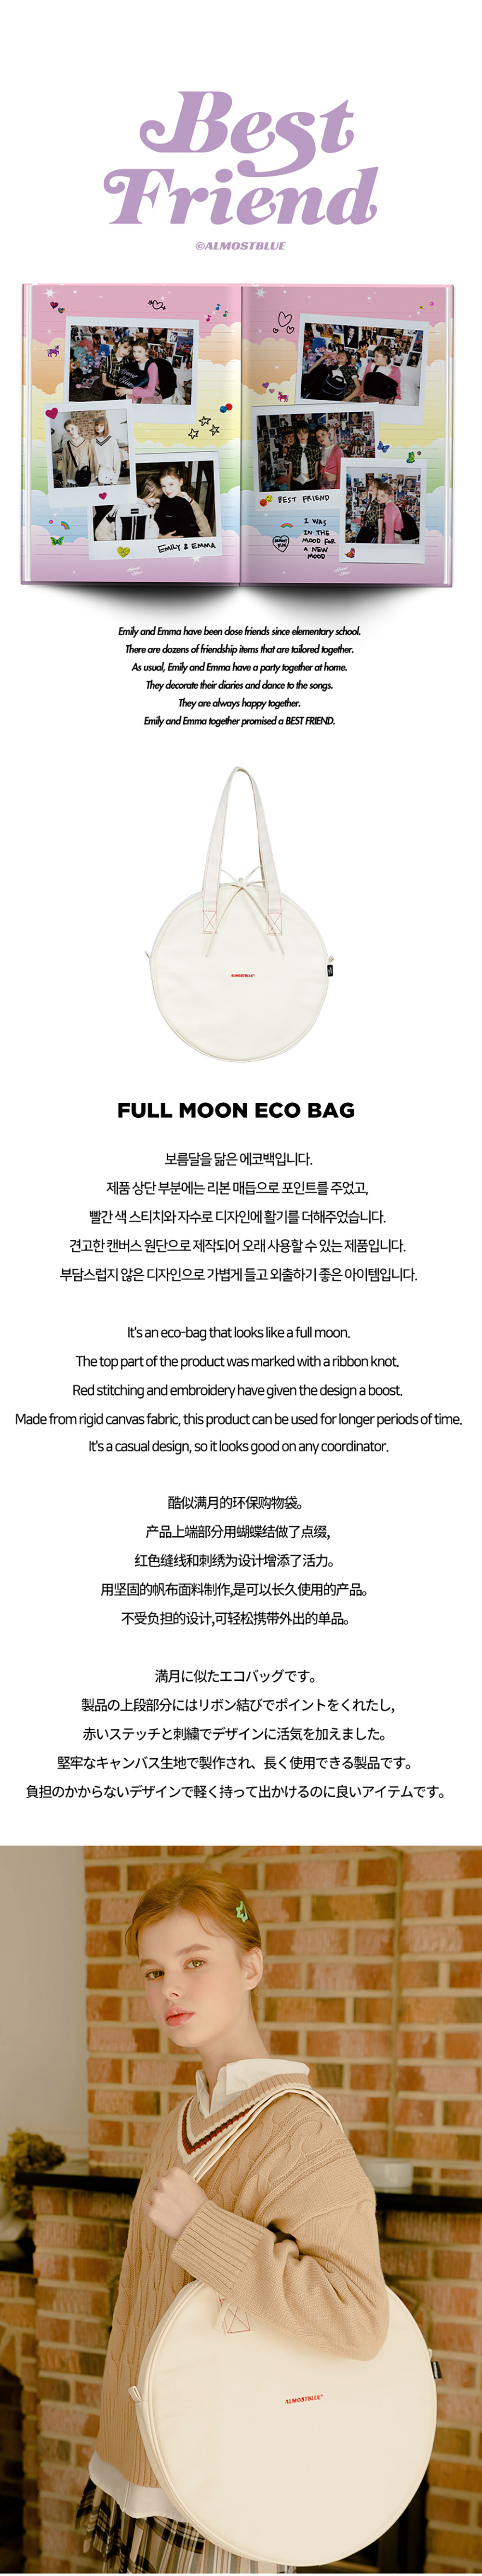 fullmoon eco bag 1.jpg